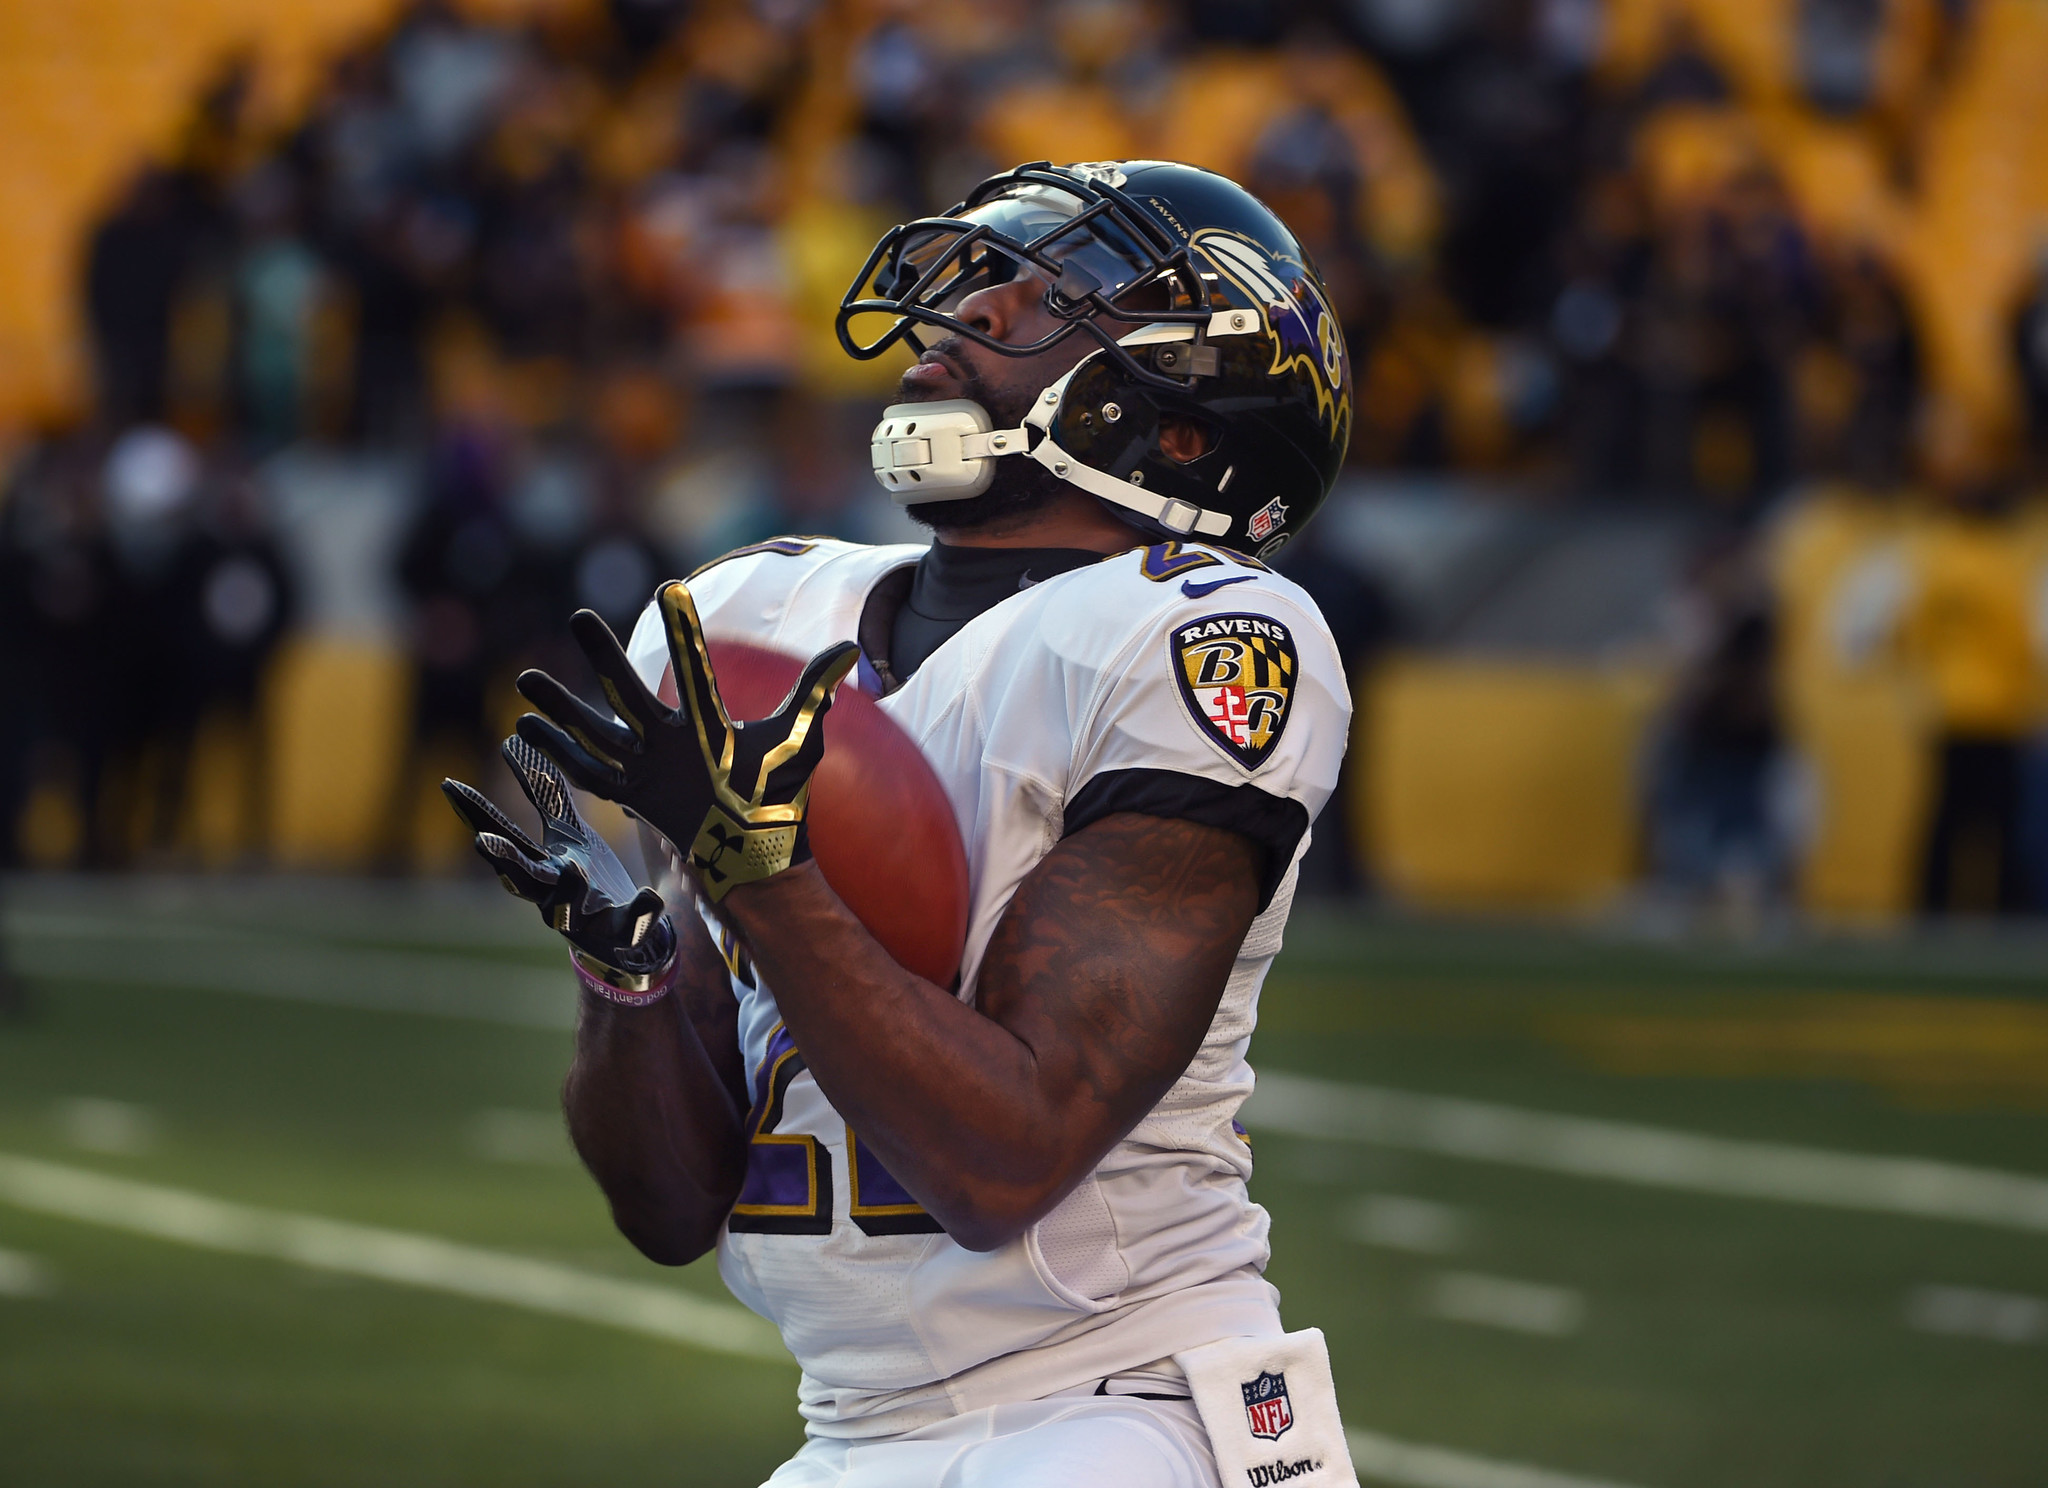 Bal-ravens-mailbag-the-draft-lardarius-webb-anquan-boldin-and-more-20170406